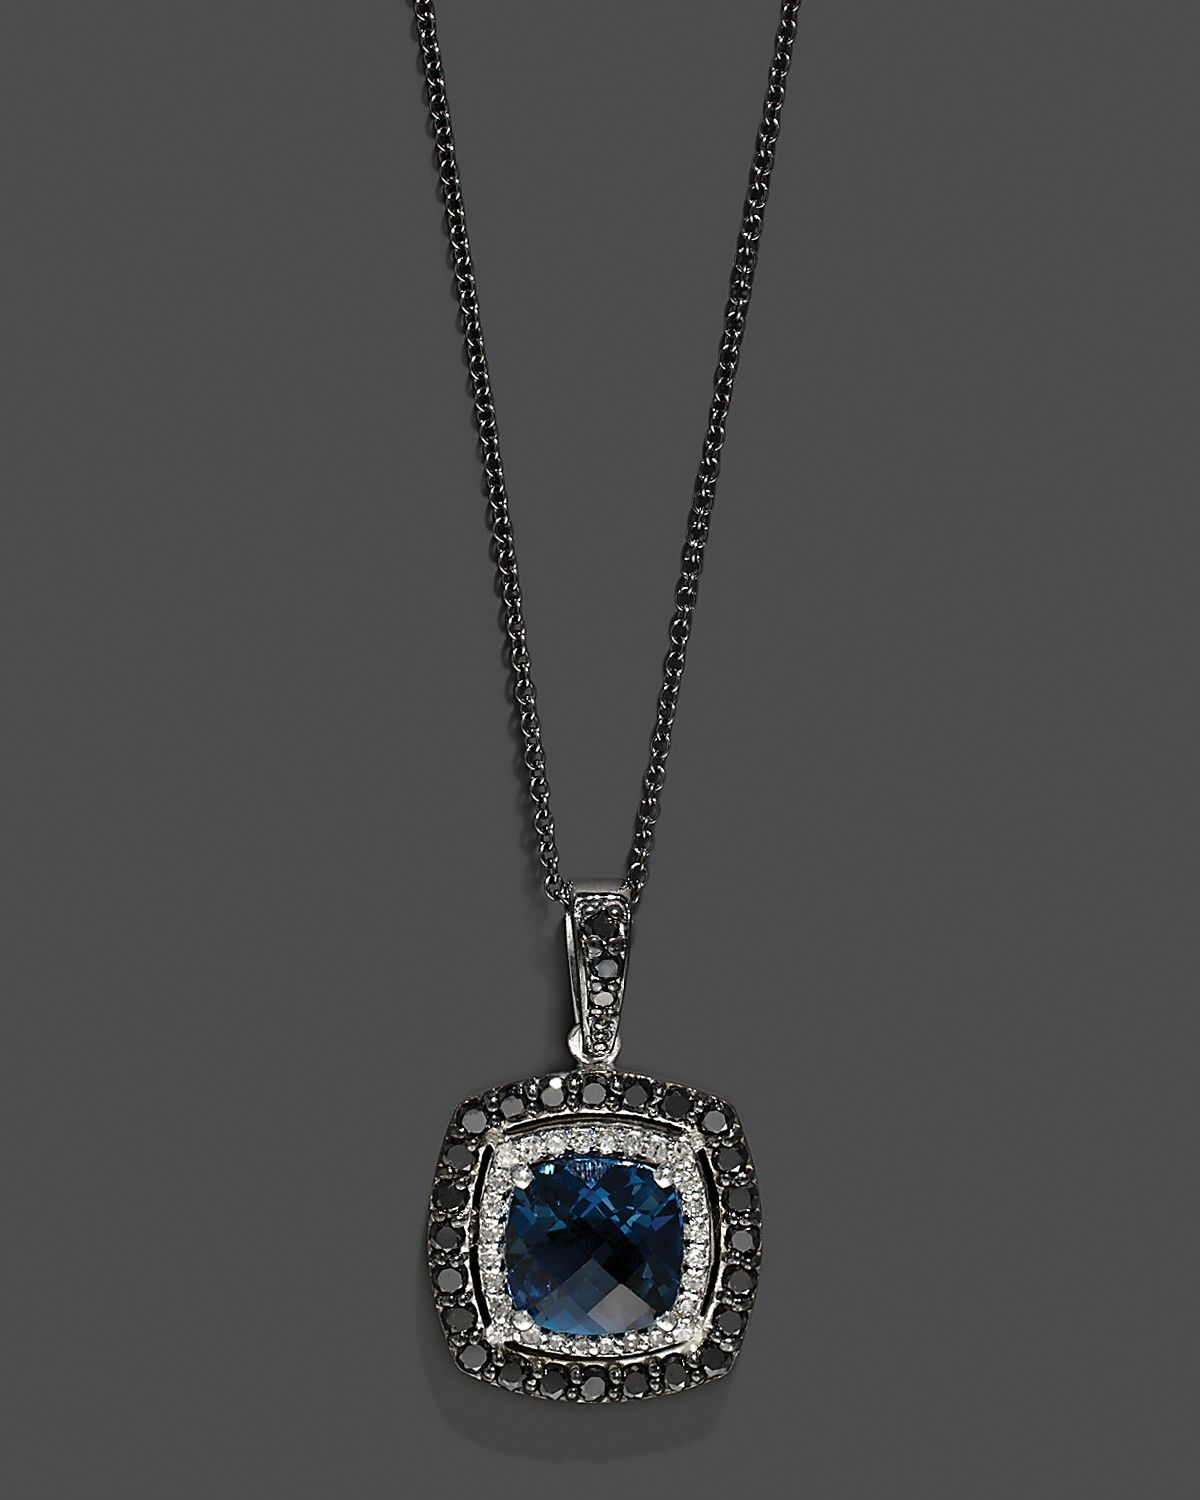 Diamond, Black Diamond And London Blue Topaz Pendant In 14K White With Regard To Best And Newest London Blue Crystal December Droplet Pendant Necklaces (Gallery 19 of 25)